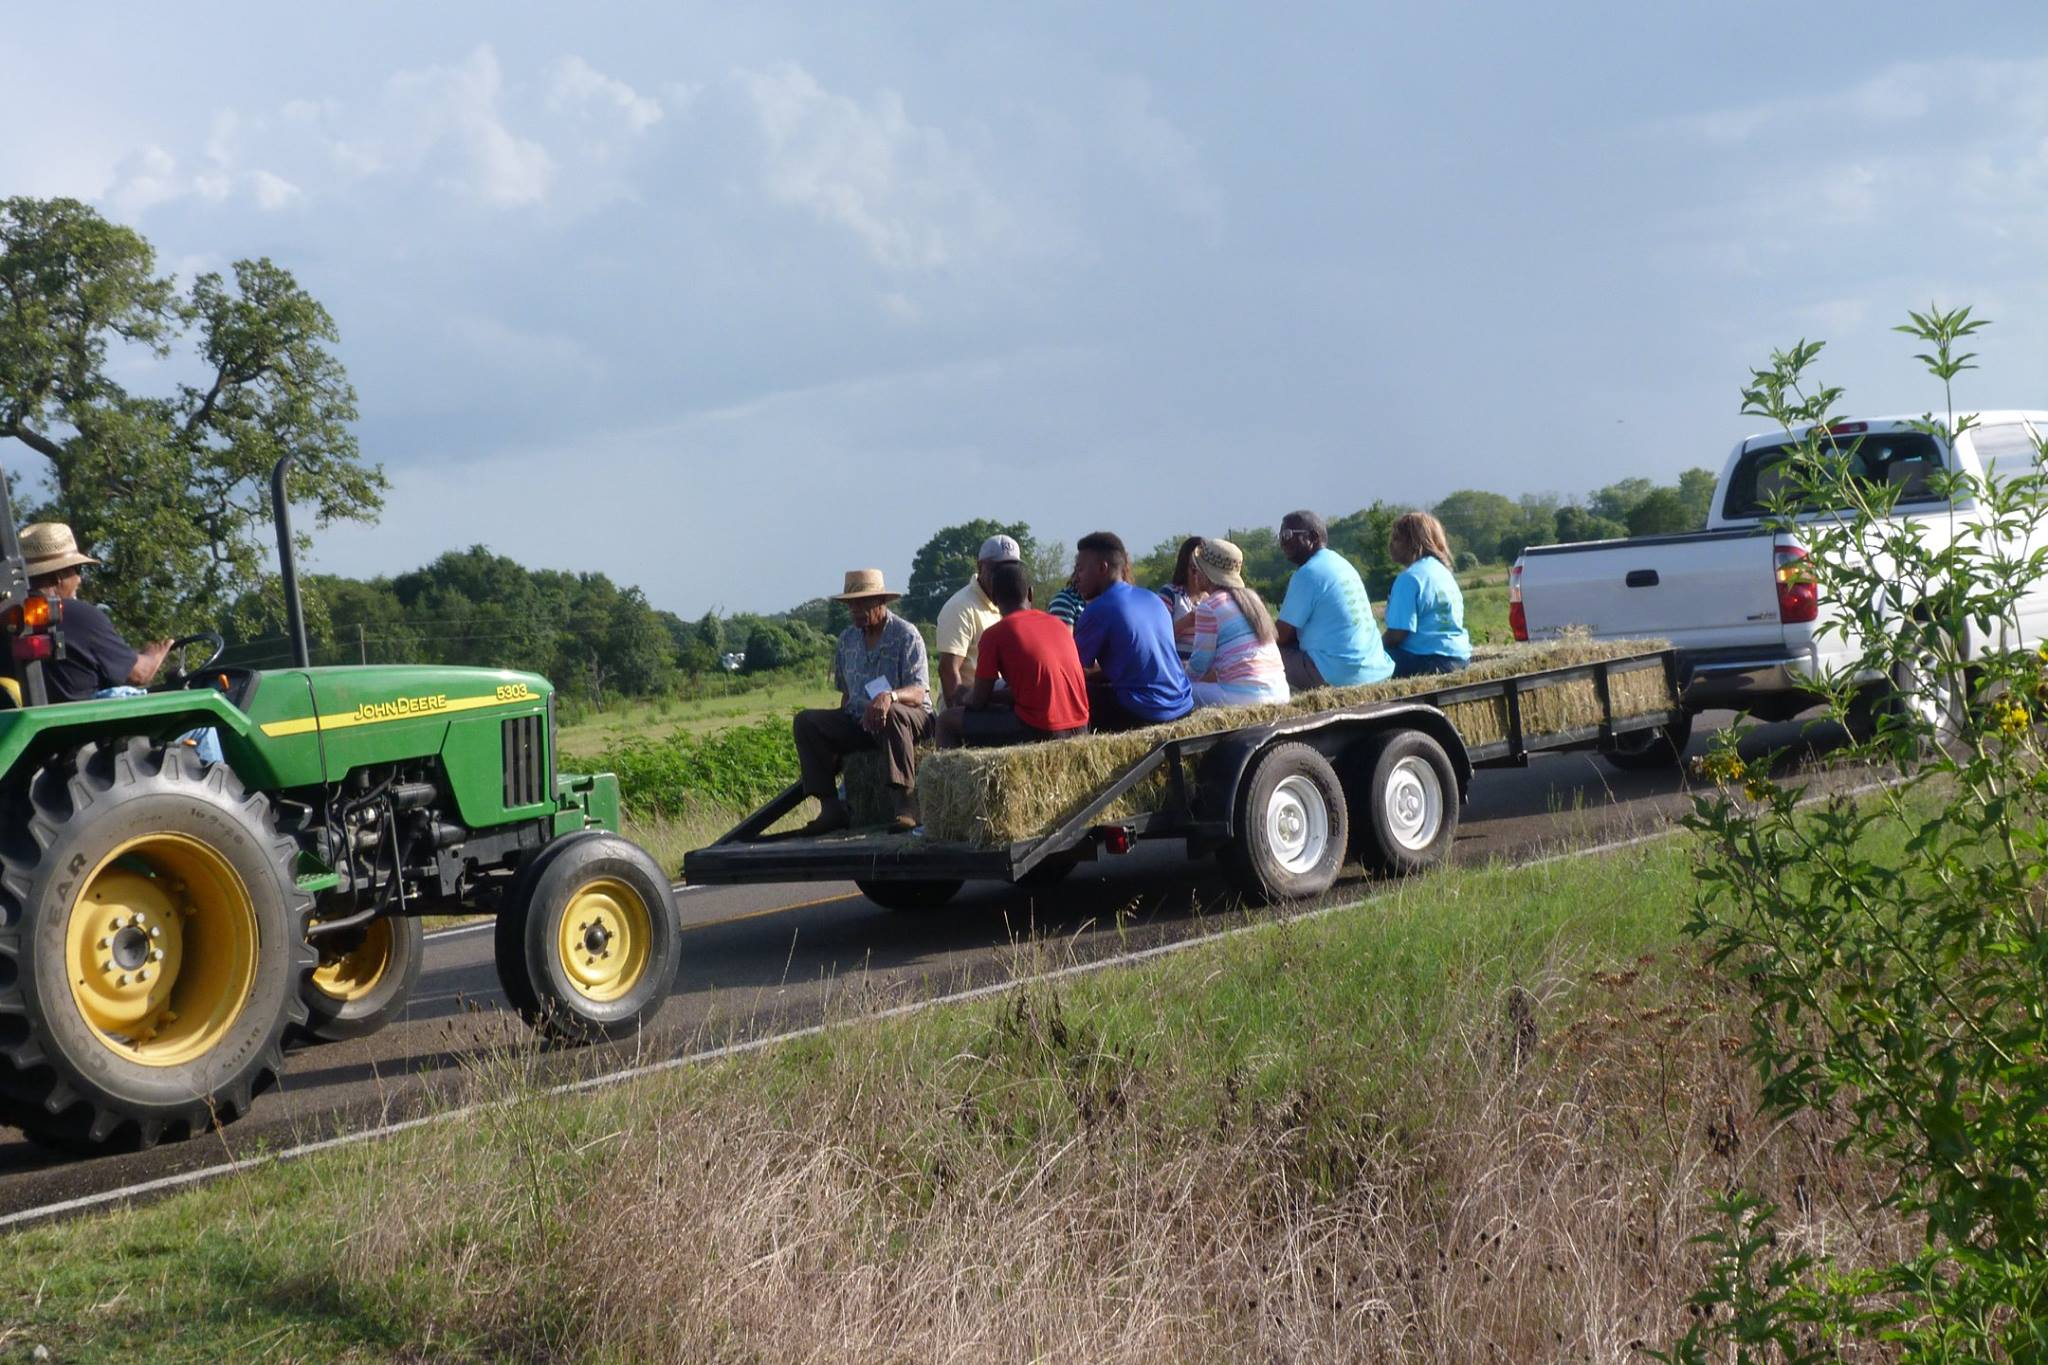 Hayride in Lincoln, Texas